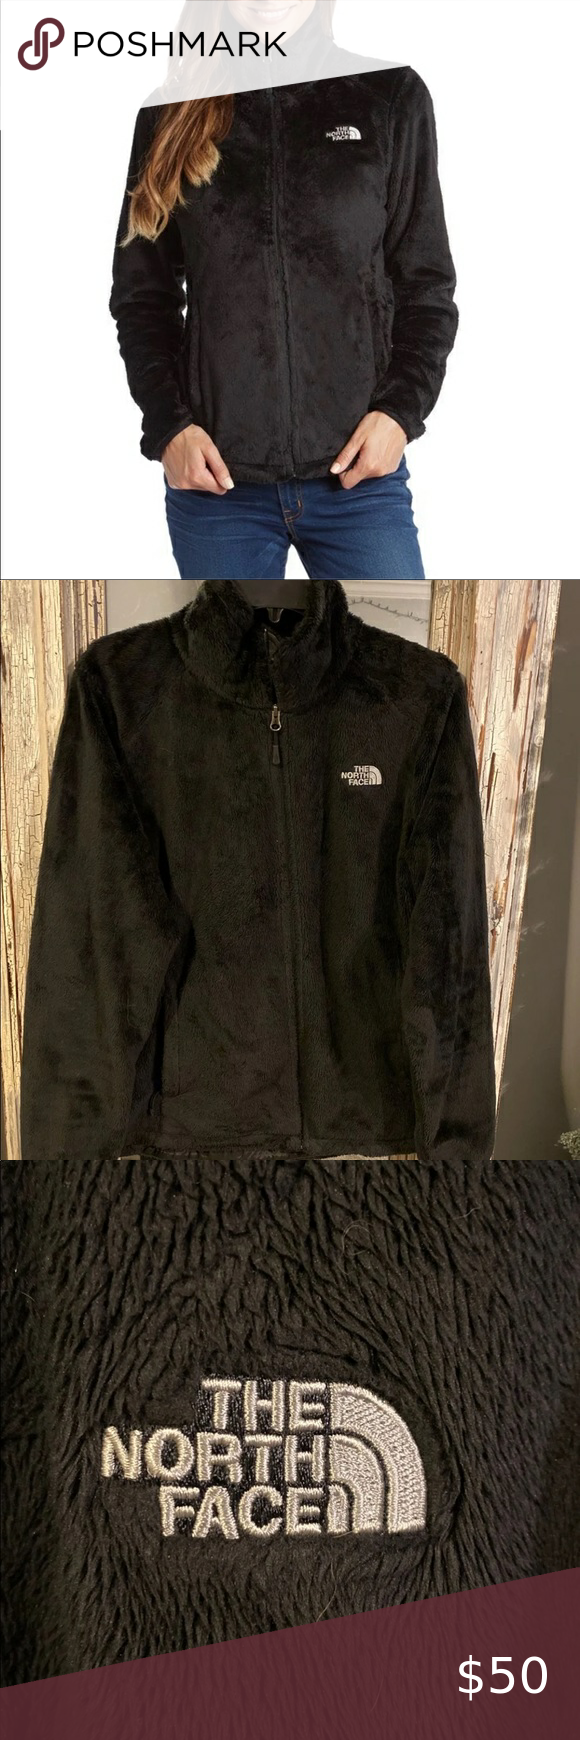 The North Face Women S Osito Jacket The North Face Women S Osito Jacket Black With White Lettering Like New Conditi North Face Women Black North Face Jackets [ 1740 x 580 Pixel ]